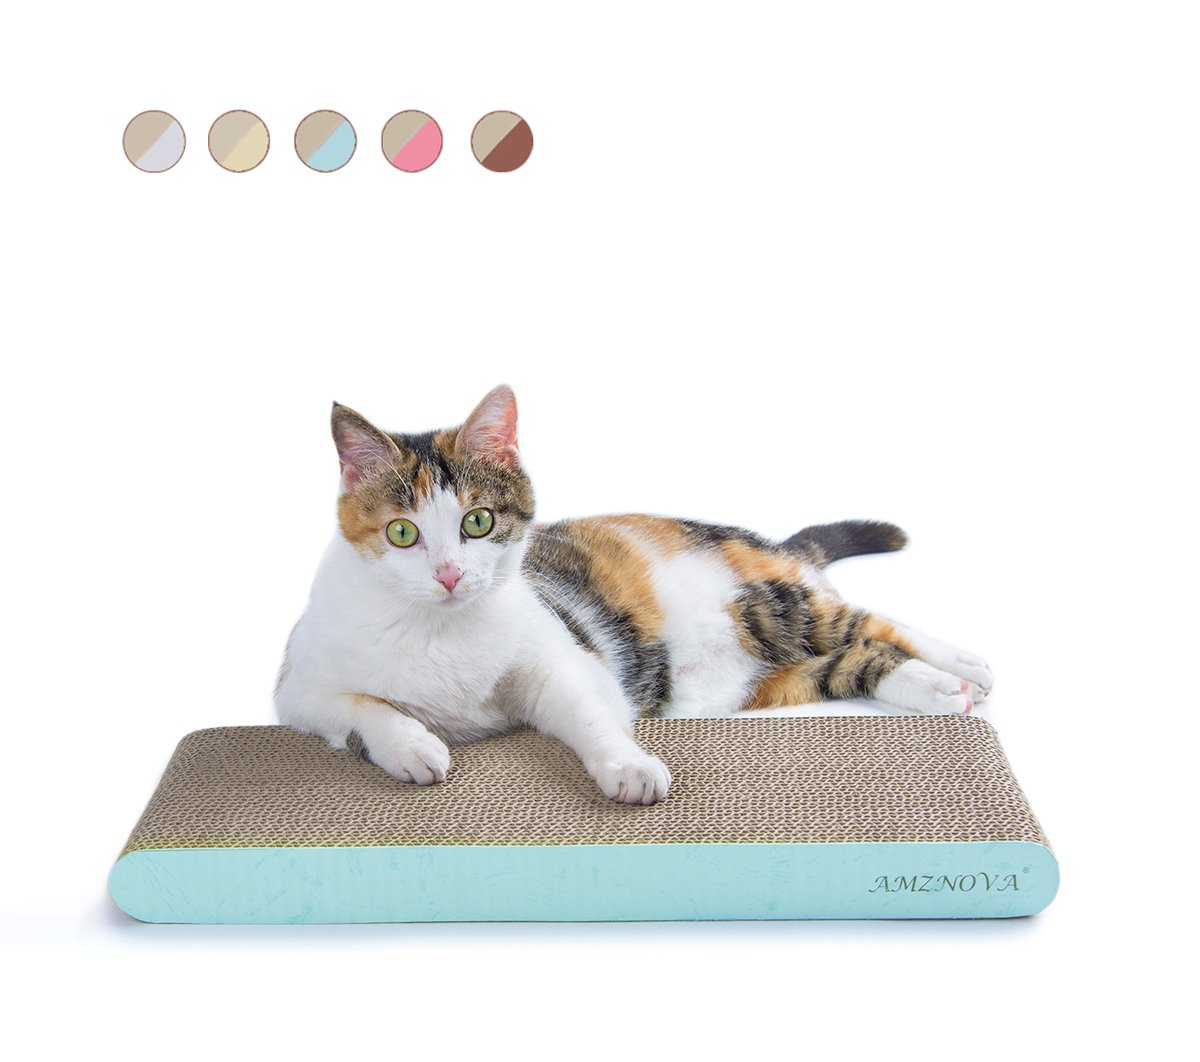 AMZNOVA Cat Scratcher, Scratching Pad, Durable Recyclable Cardboard with Catnip, Colors Series, 7 Colors & 2 Sizes 61qXioxn5lL